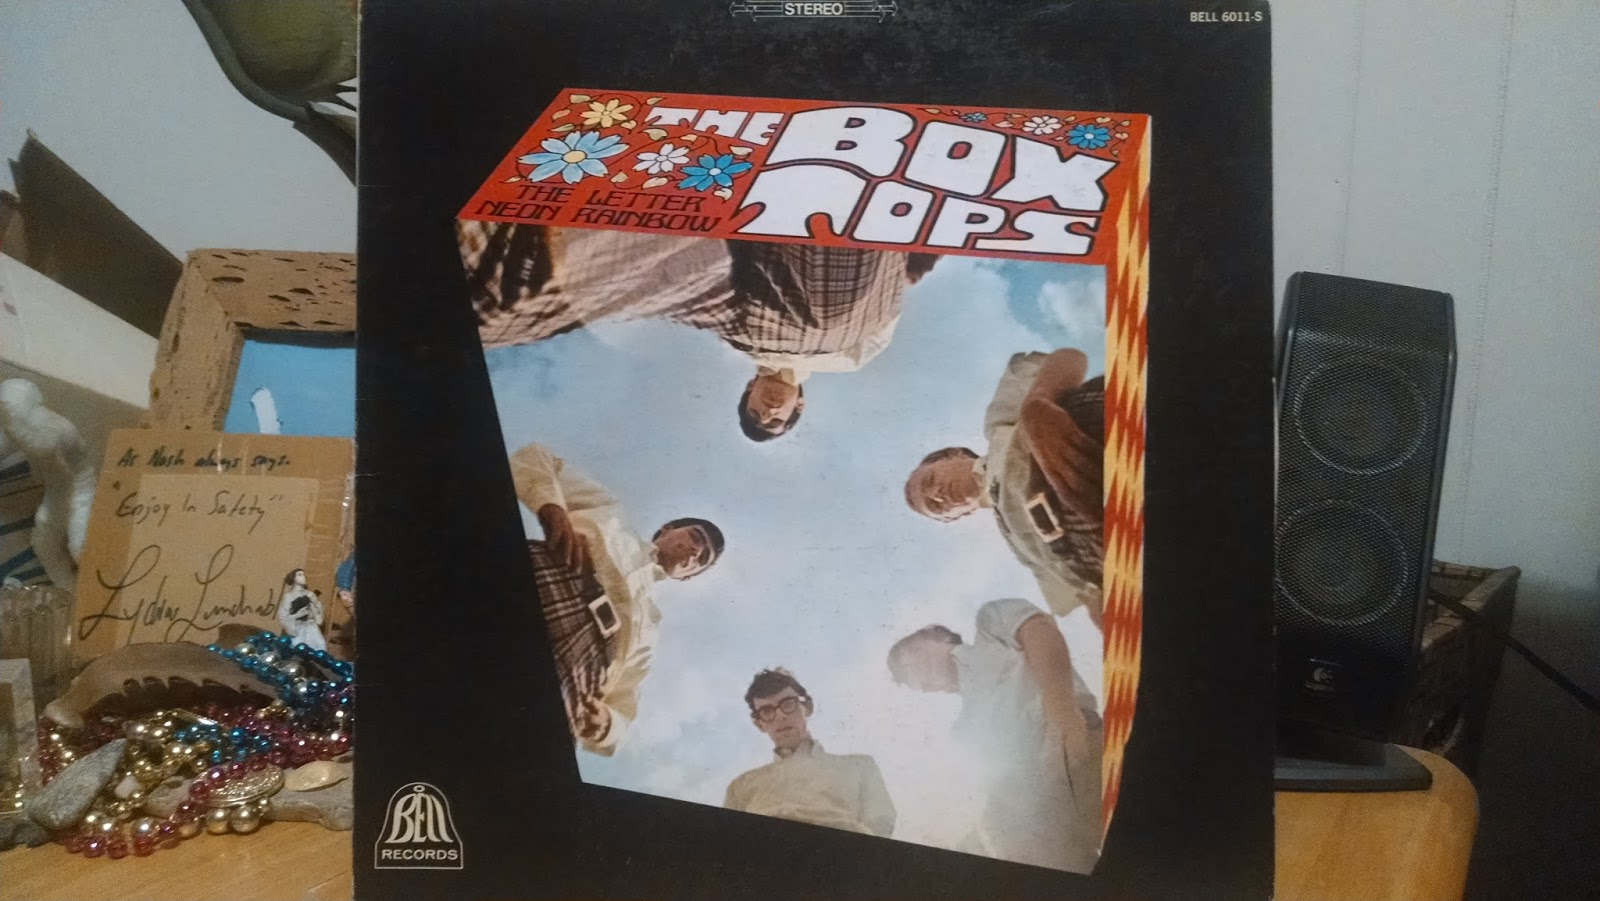 DOWN UNDERGROUND The Box Tops The Letter bw Neon Rainbow LP w